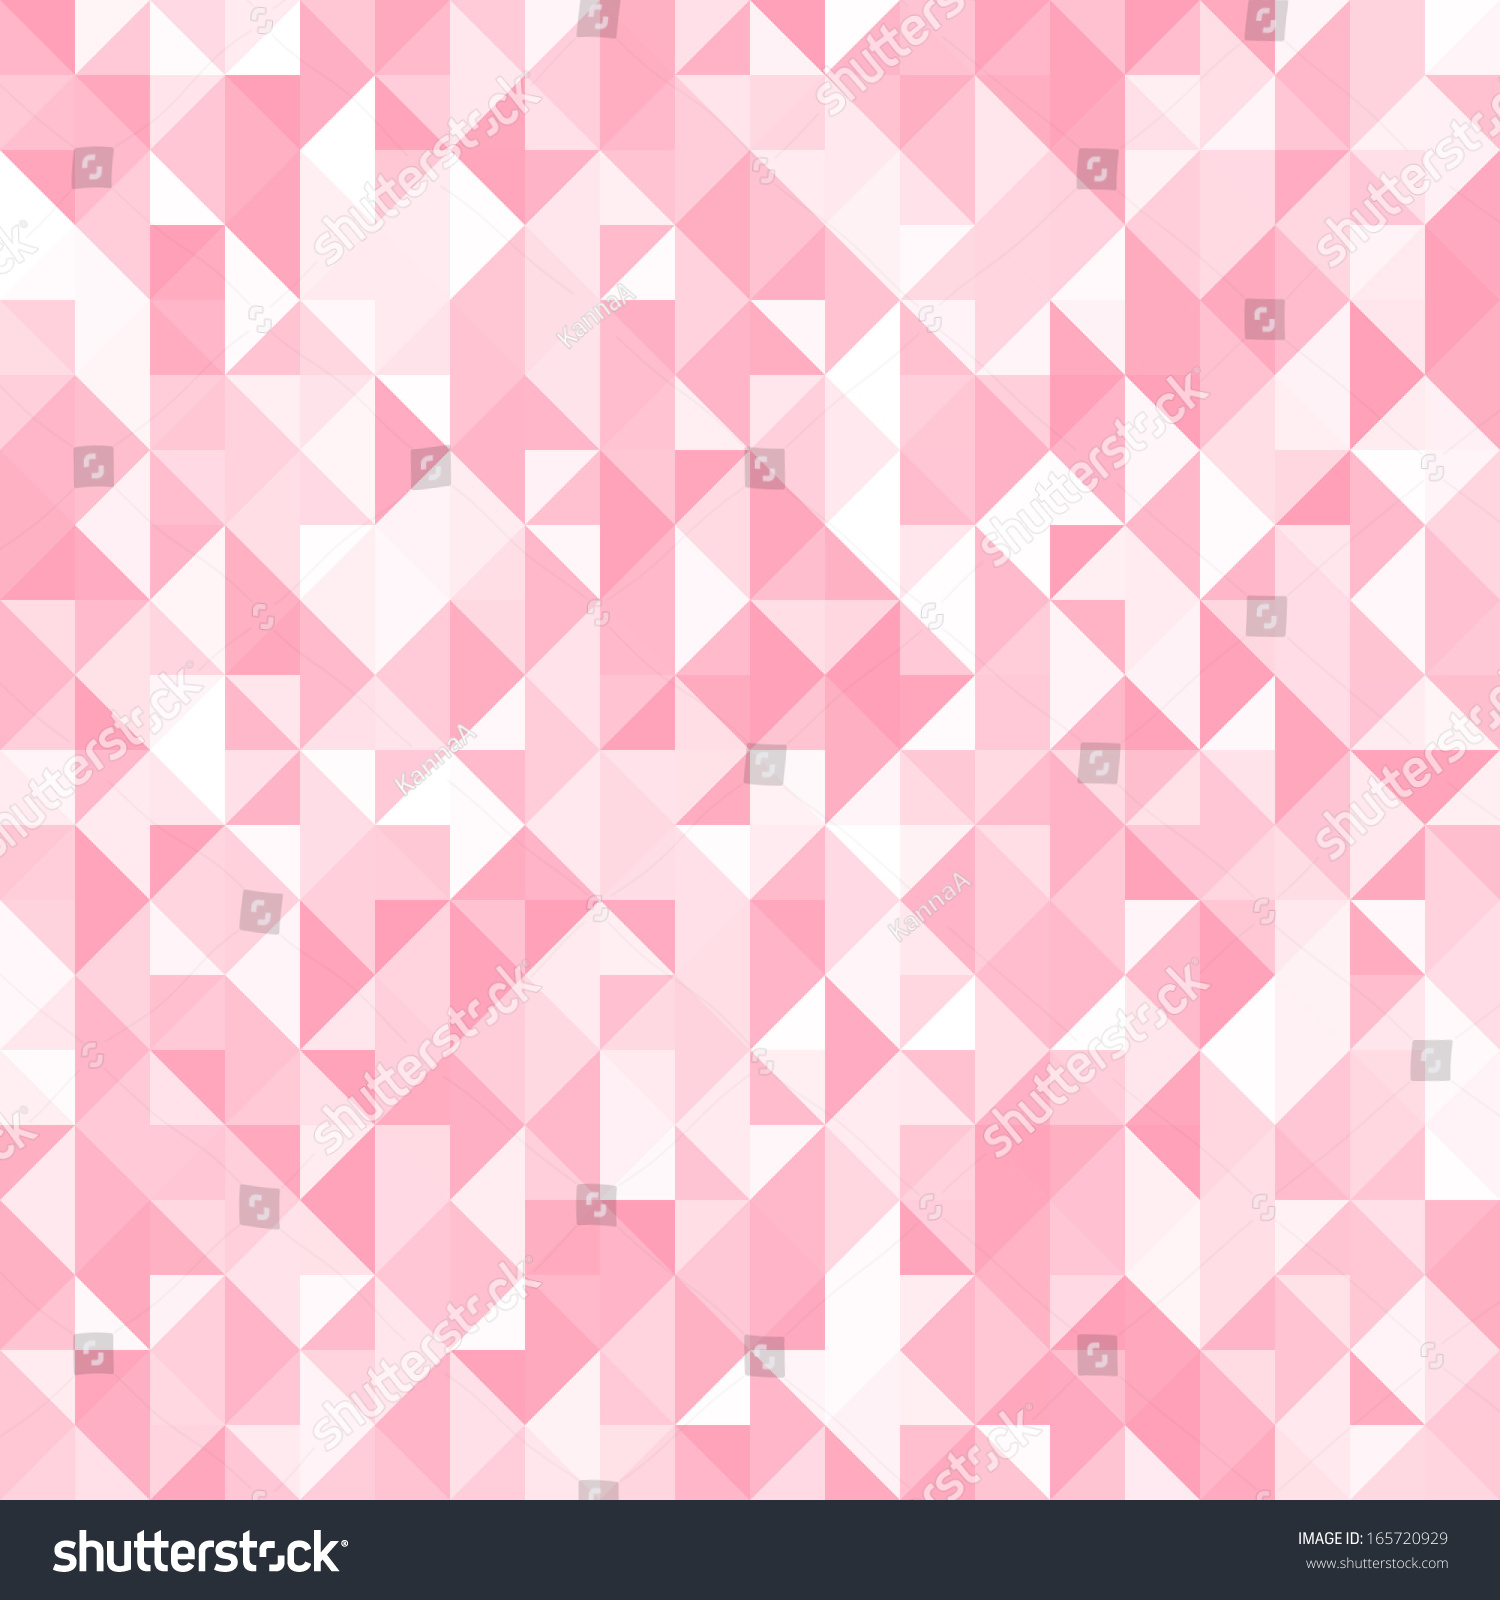 Cute Book Cover Backgrounds : Abstract crystal pink triangle background vector stock